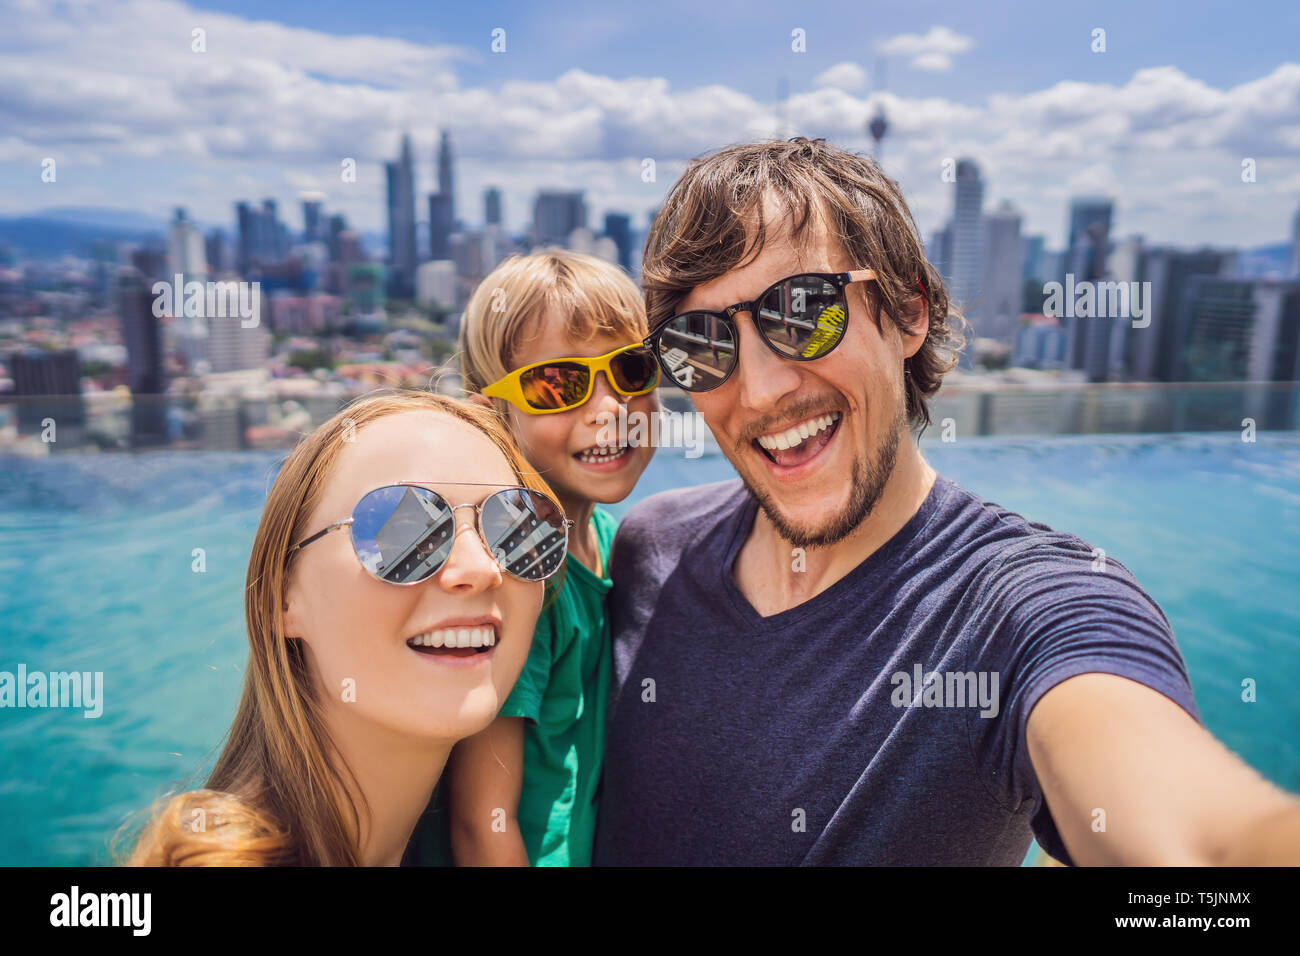 Vacation and technology. Happy family with kid taking selfie together near swimming pool with panoramic views of the city - Stock Image